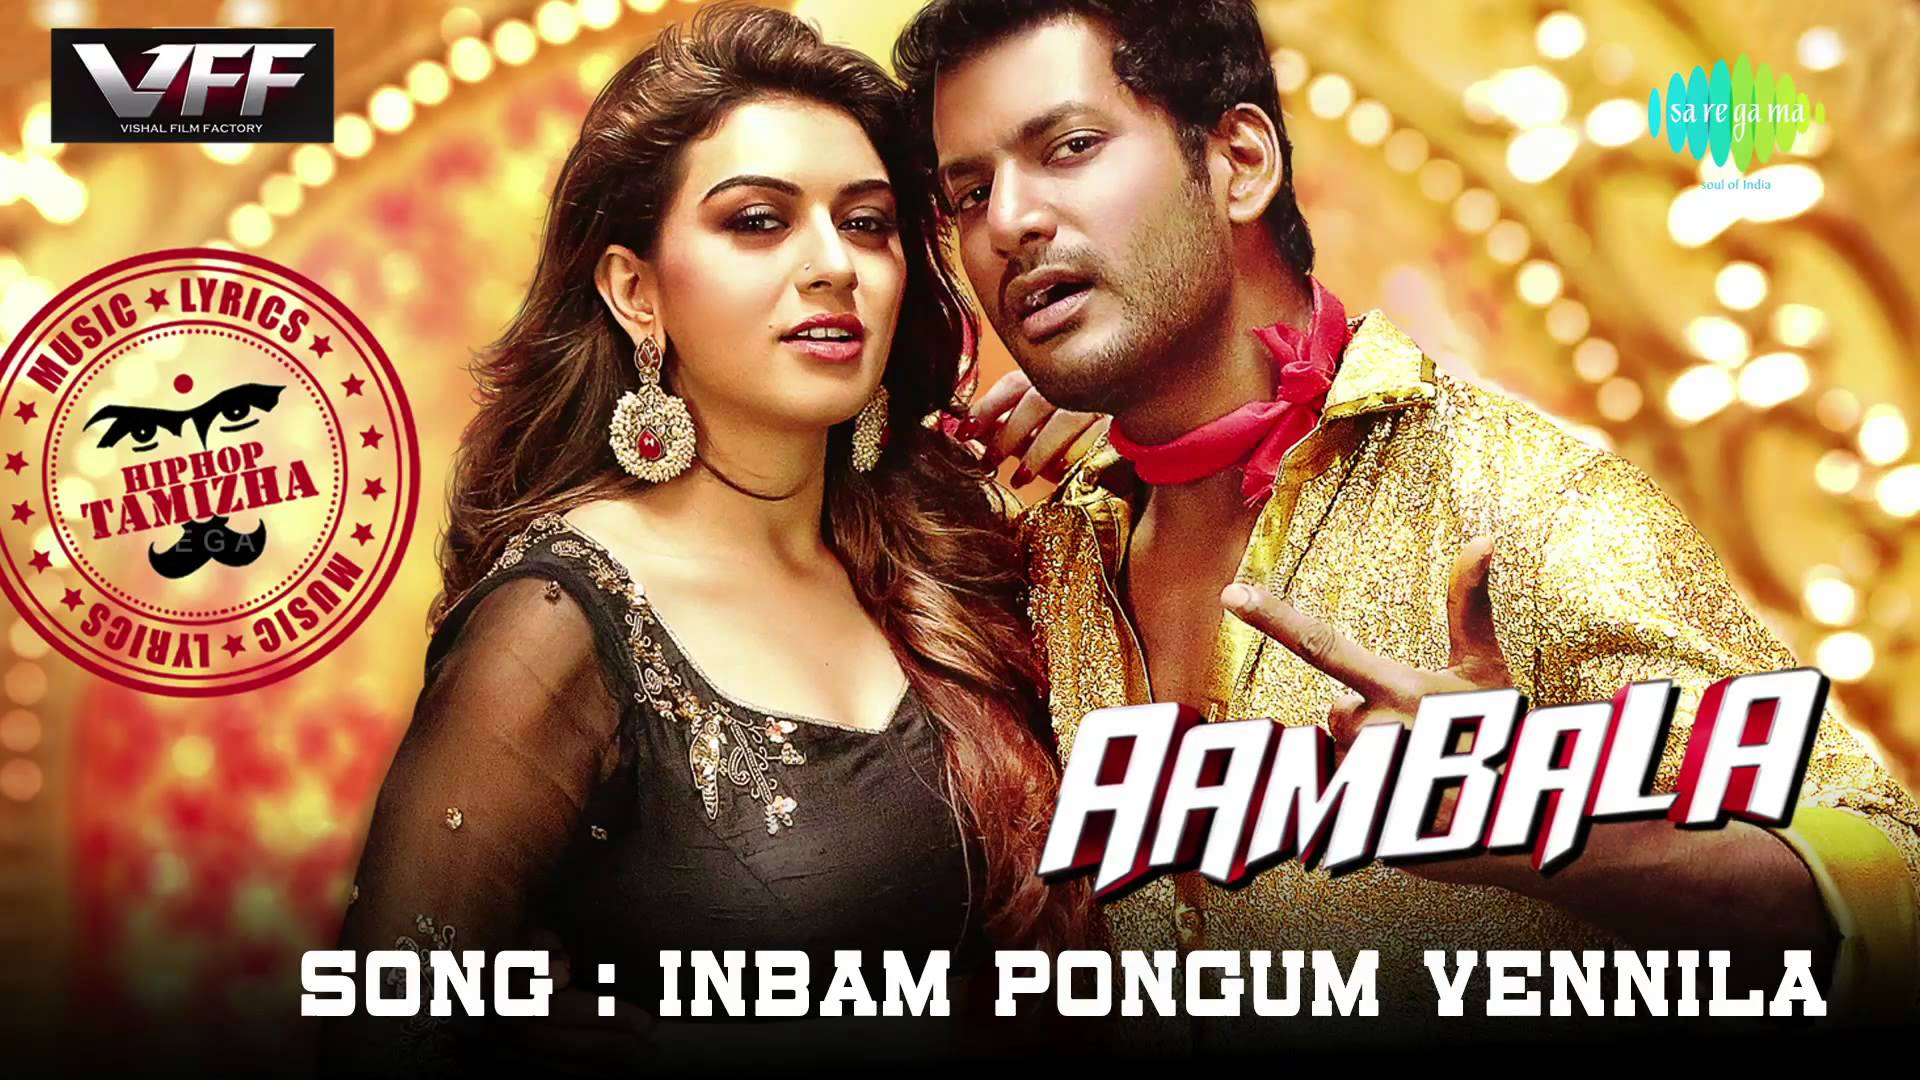 Aambala Songs, Download Aambala Movie Songs For Free Online at blogger.com